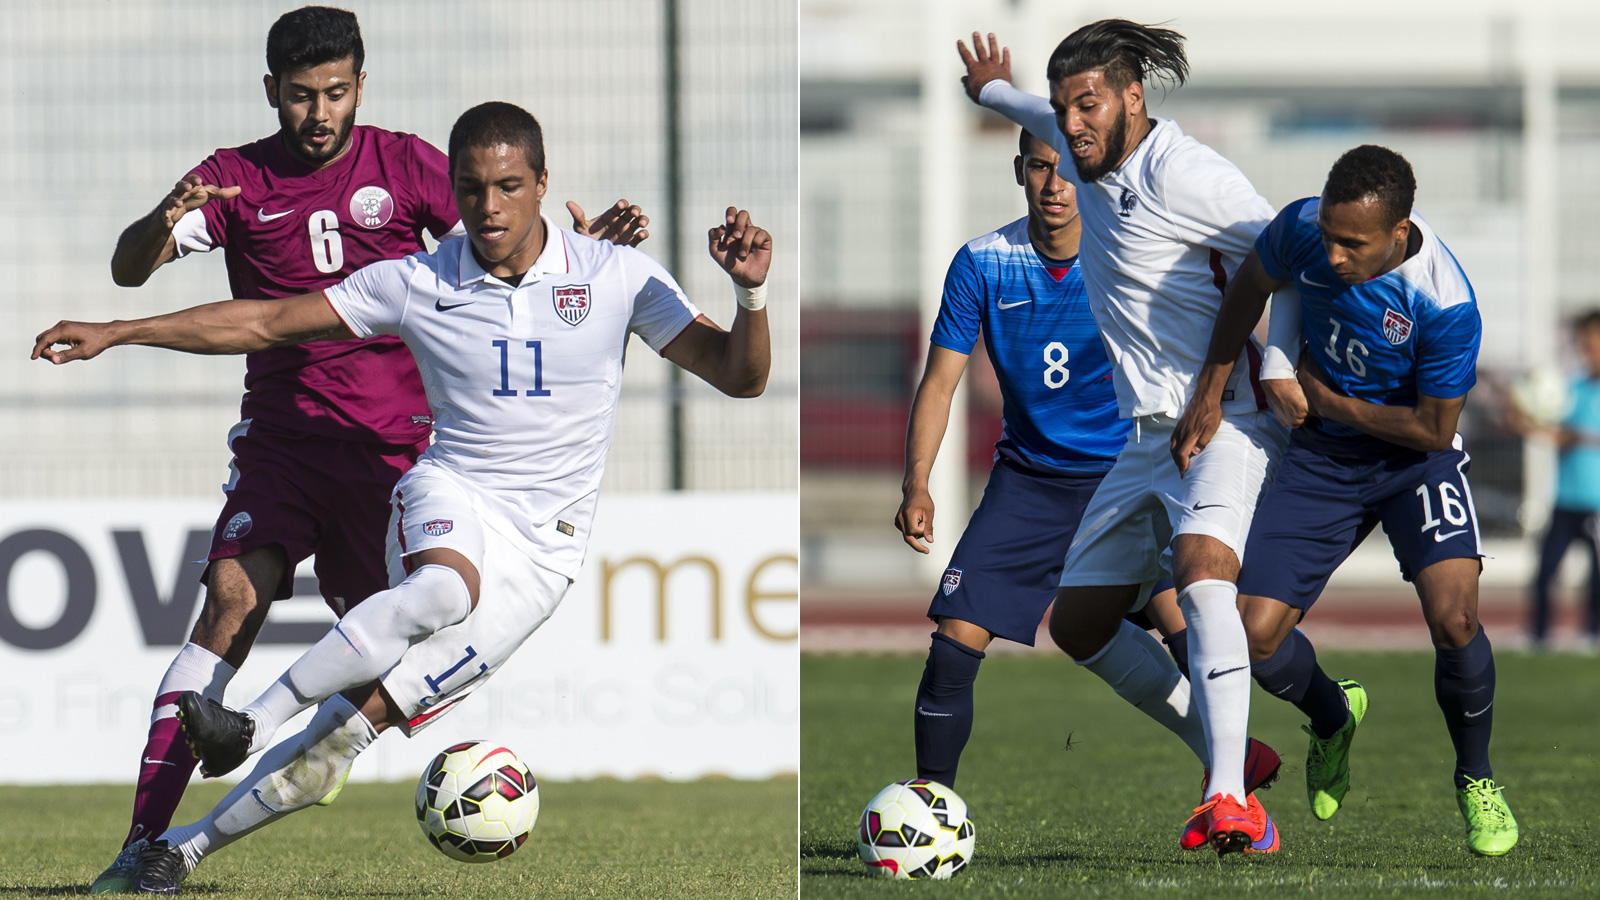 Alonso Hernandez, left, takes on Qatar, while Julian Green, right, vies for the ball against France in the Toulon Tournament as part of Olympic qualifying preparations.